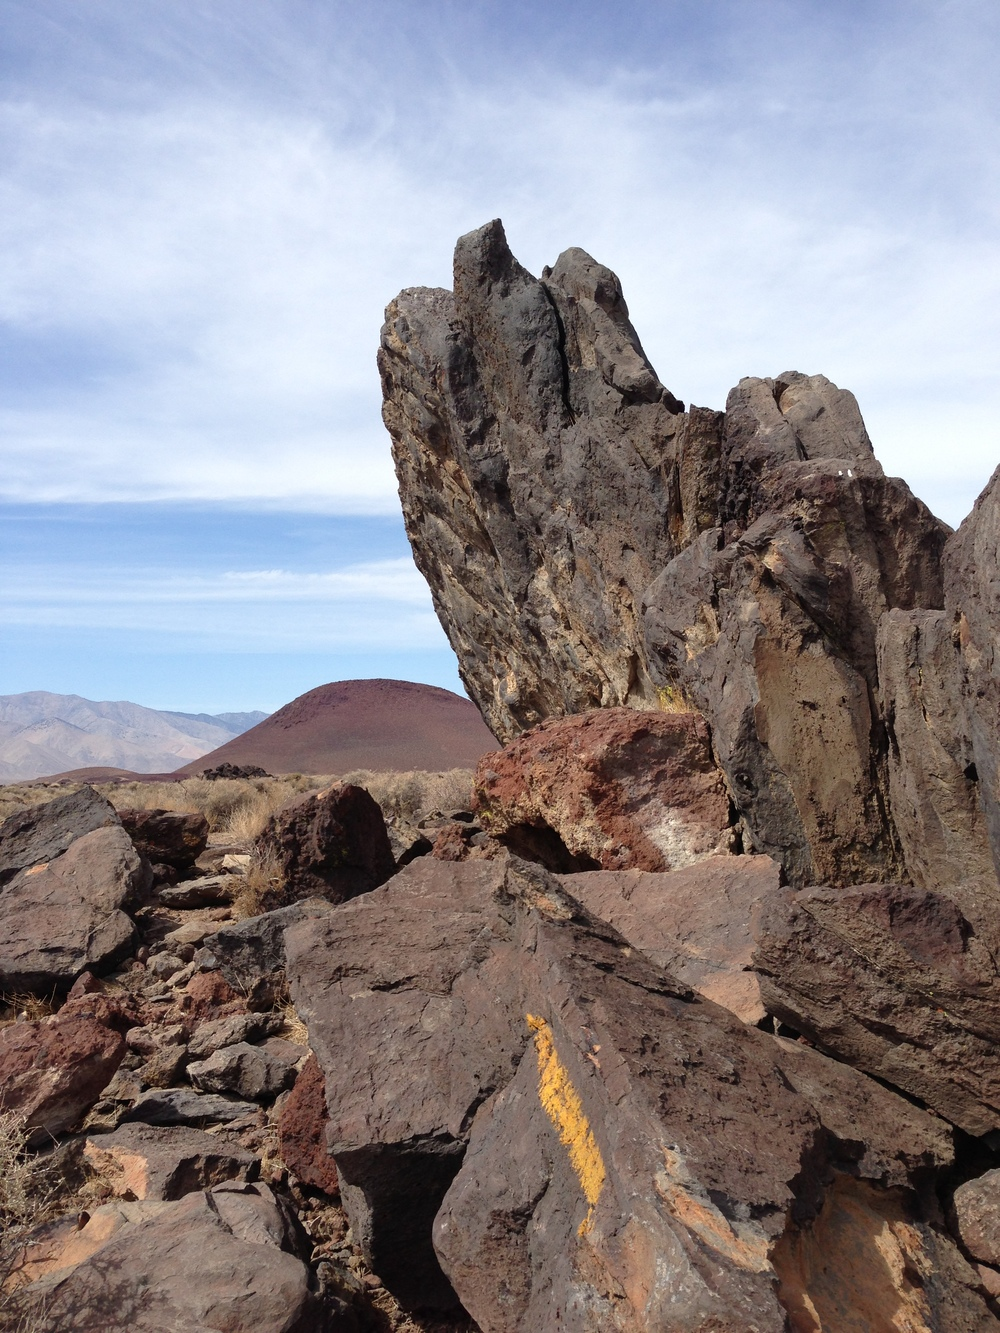 The volcanic scenery around Fossil Falls, including Red Hill